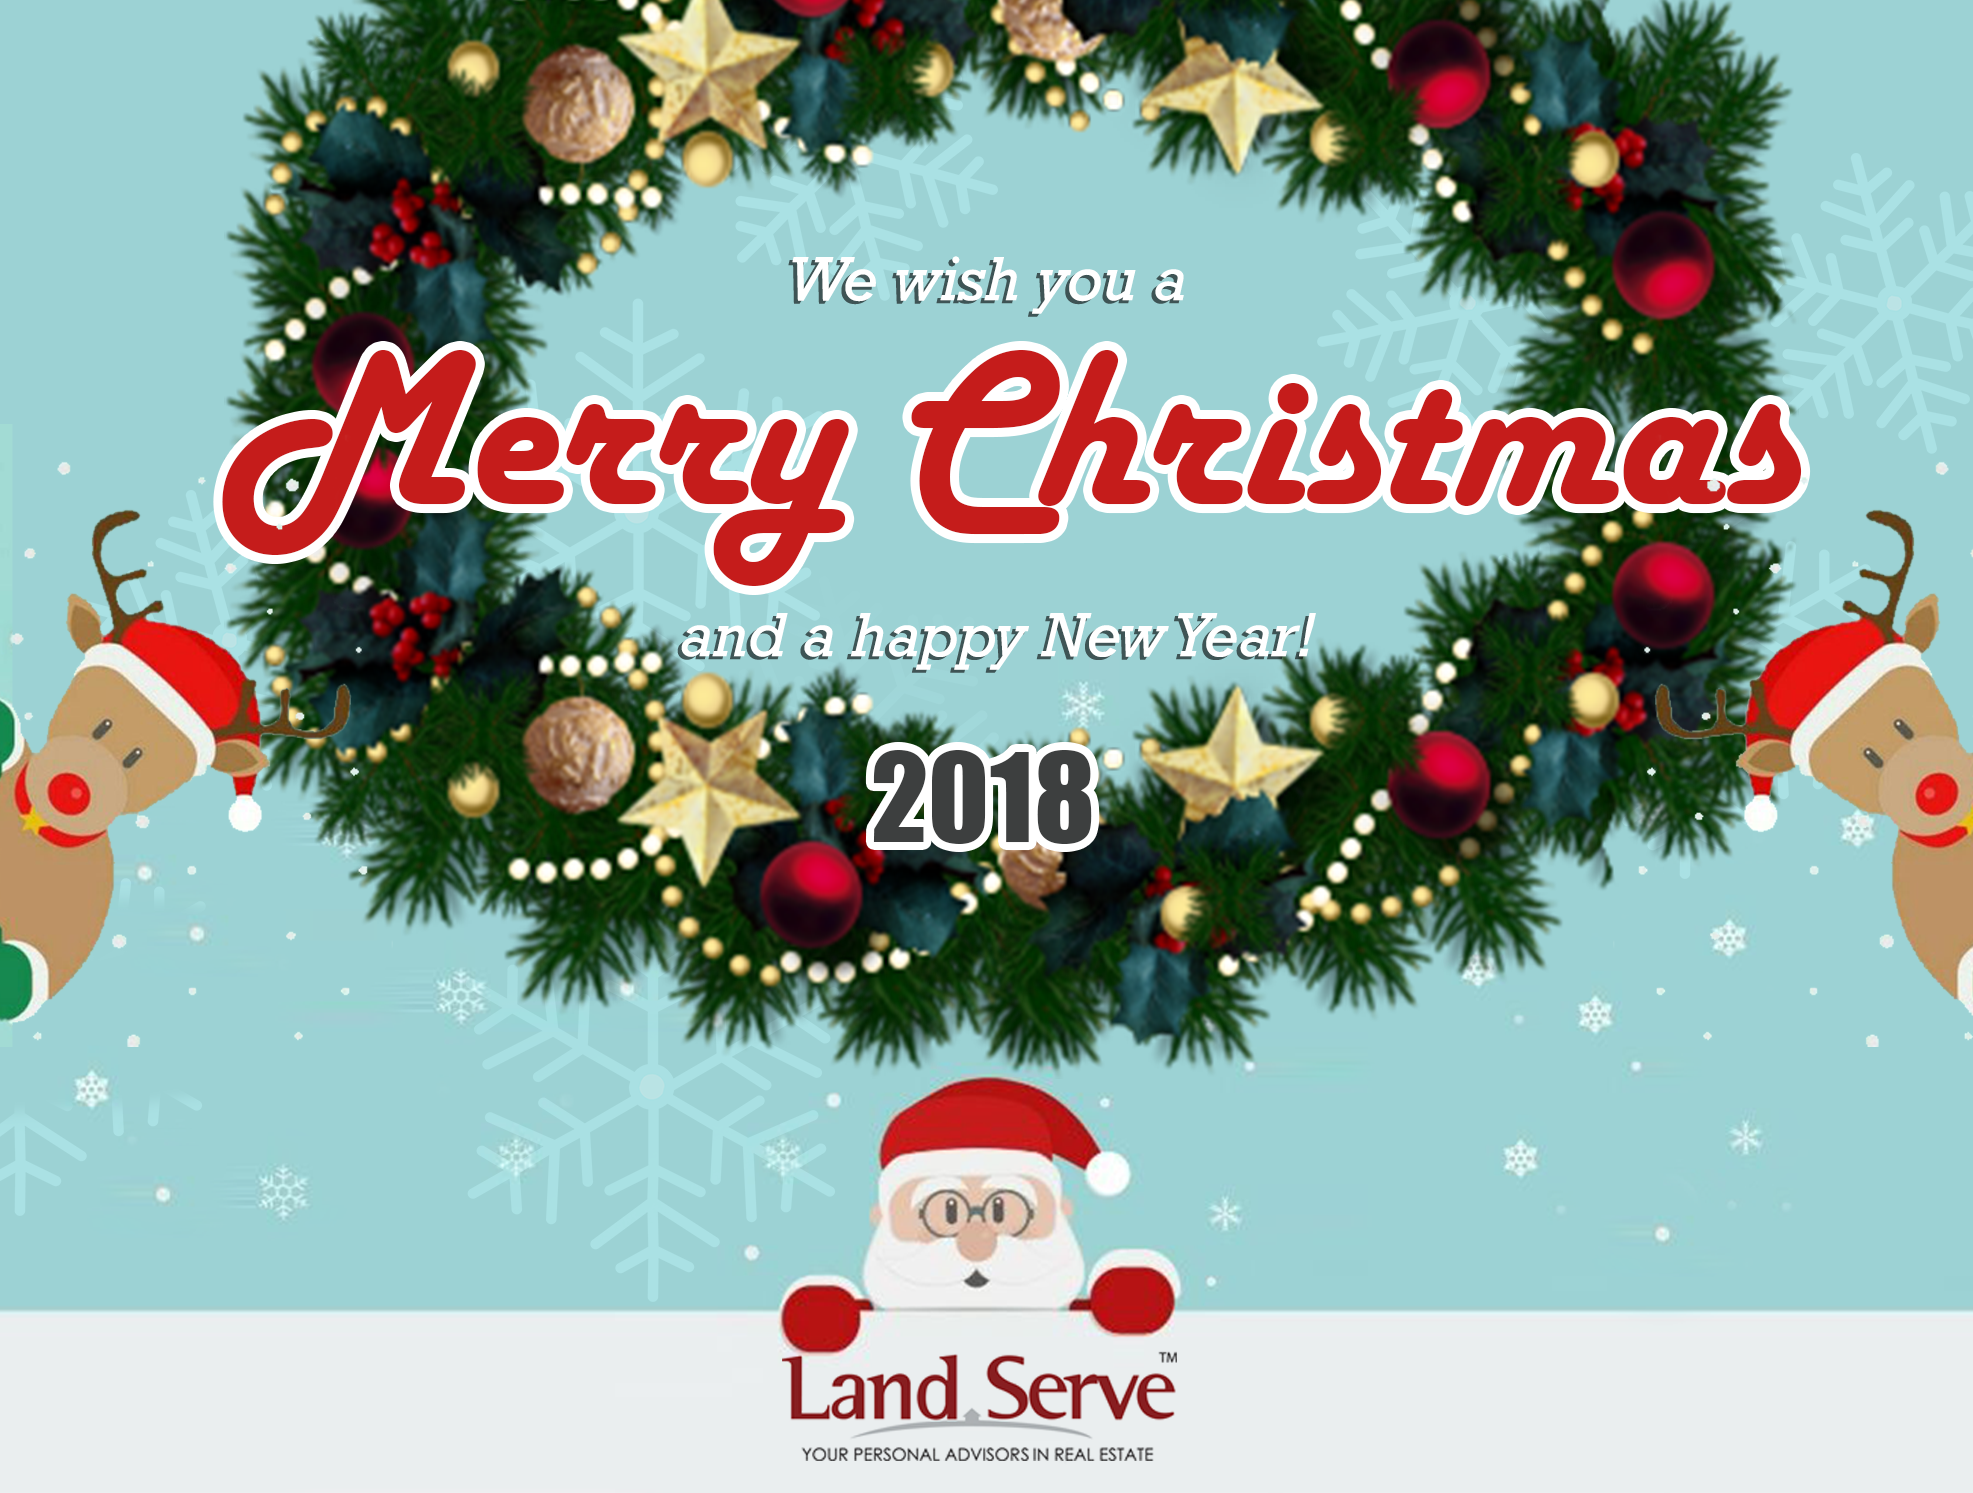 A Year in Review: Amazing Things We Are Grateful for Achieving at LandServe in 2017